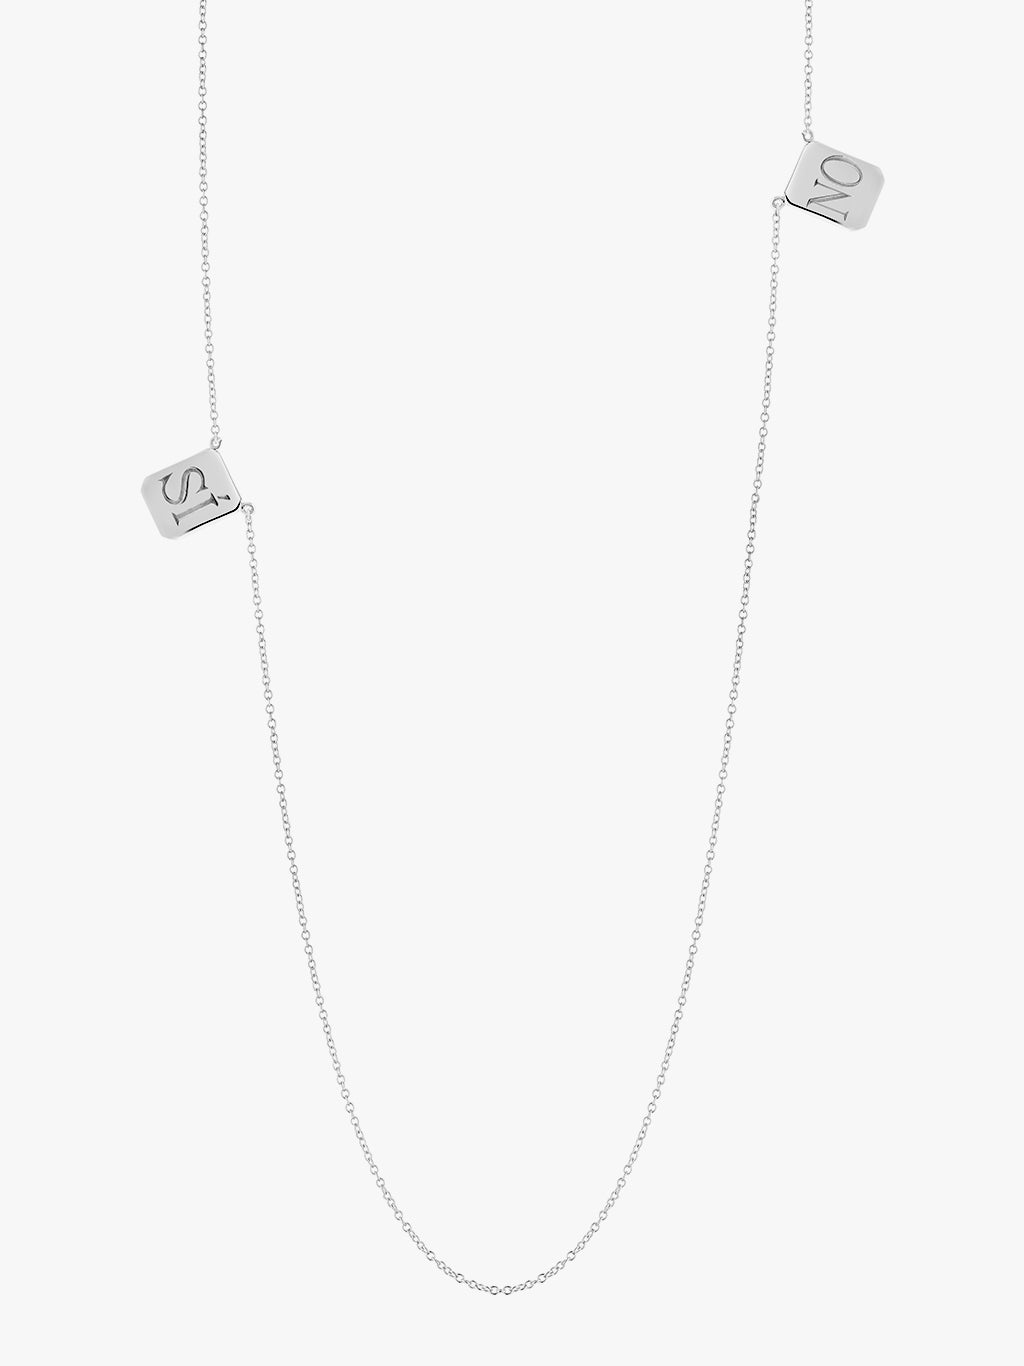 SI•NO Edition Silver Tag Necklace